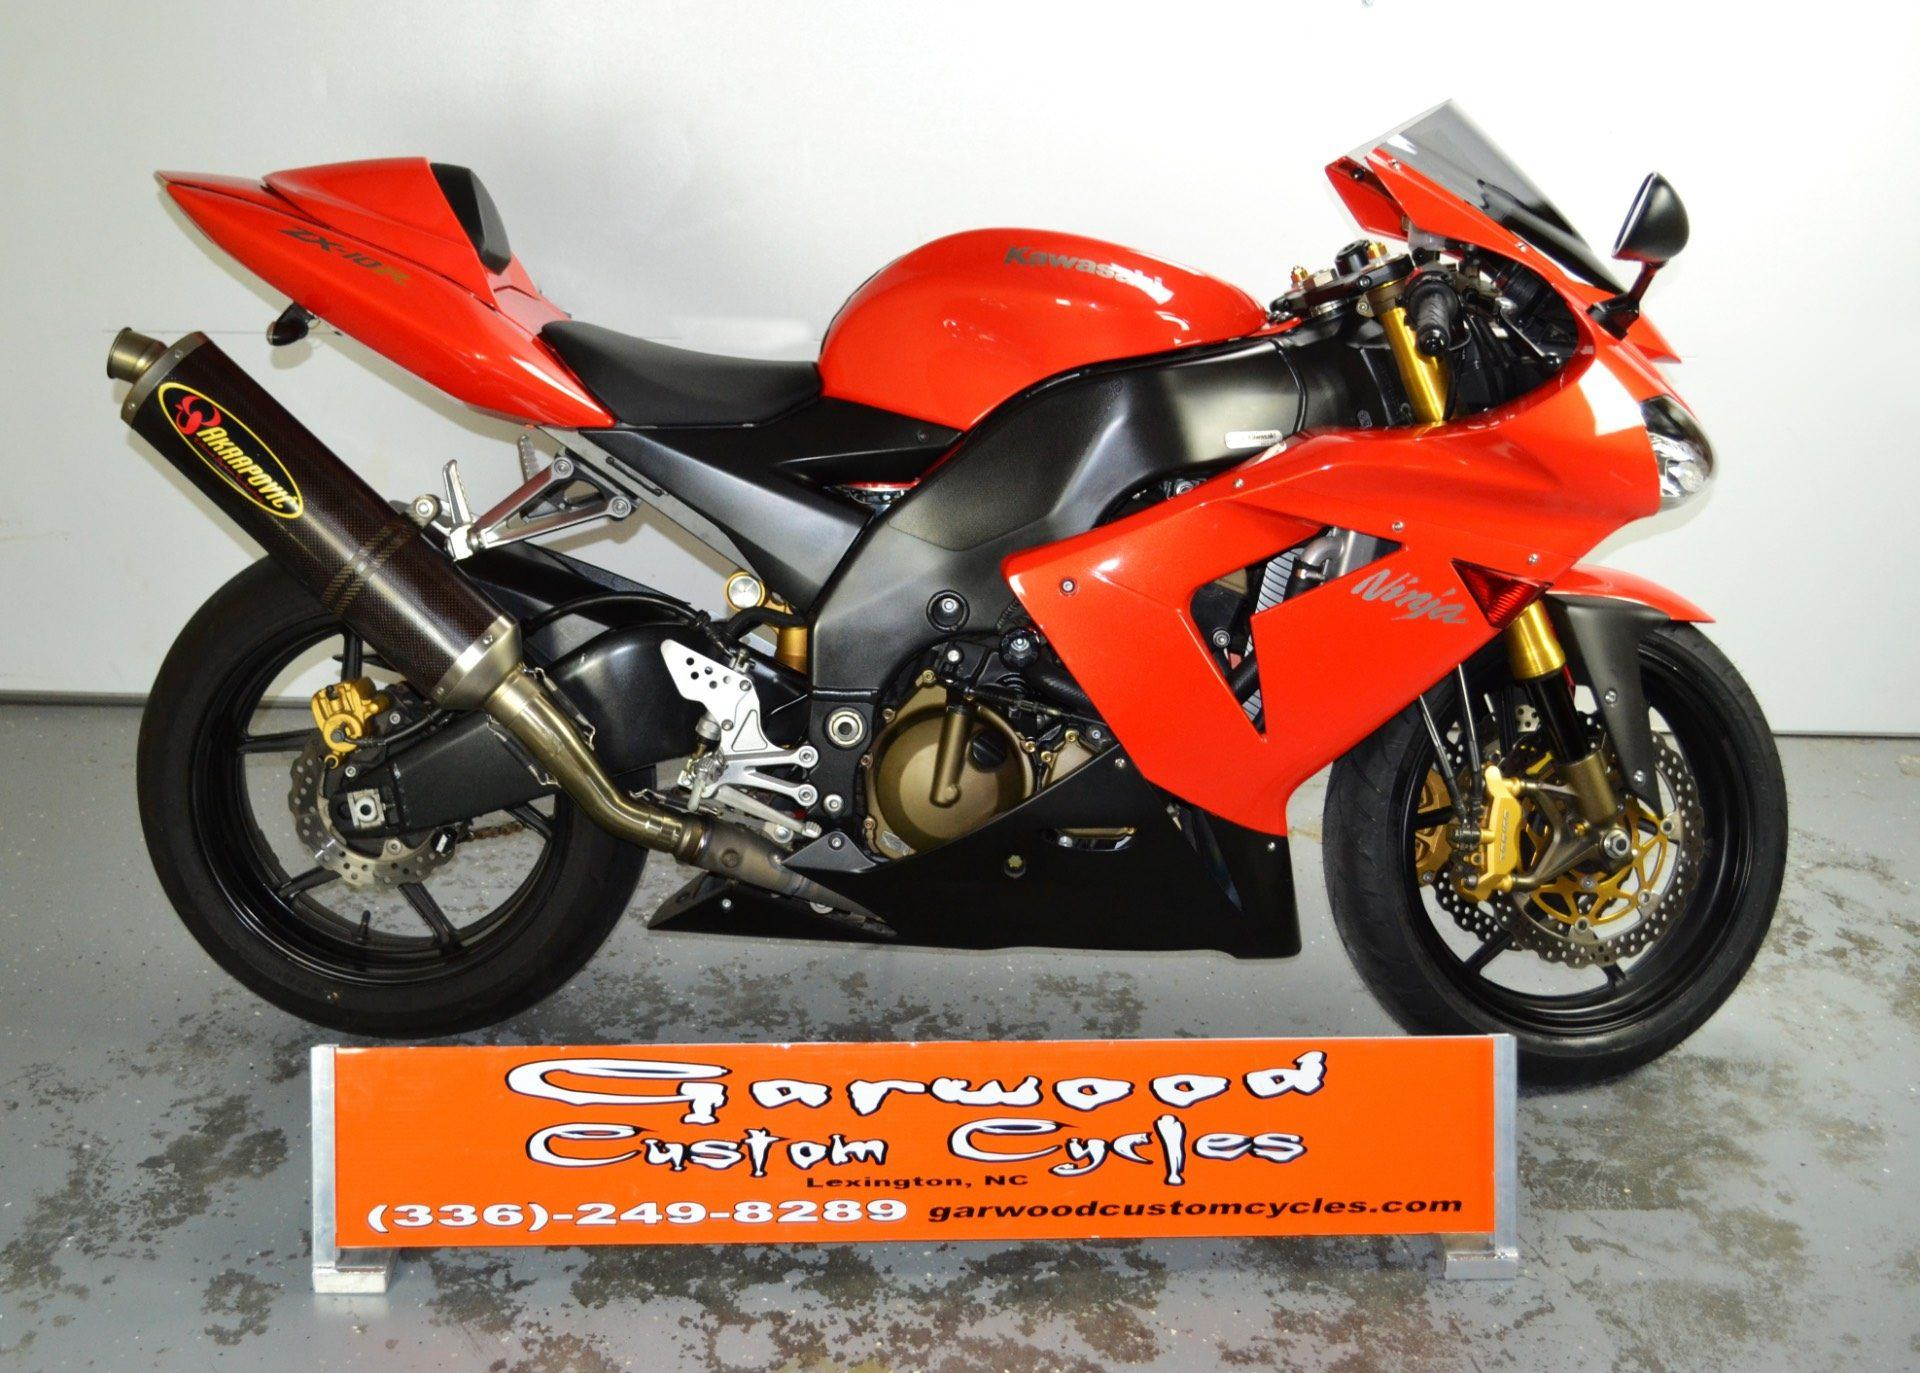 2005 Kawasaki ZX-10 in Lexington, North Carolina